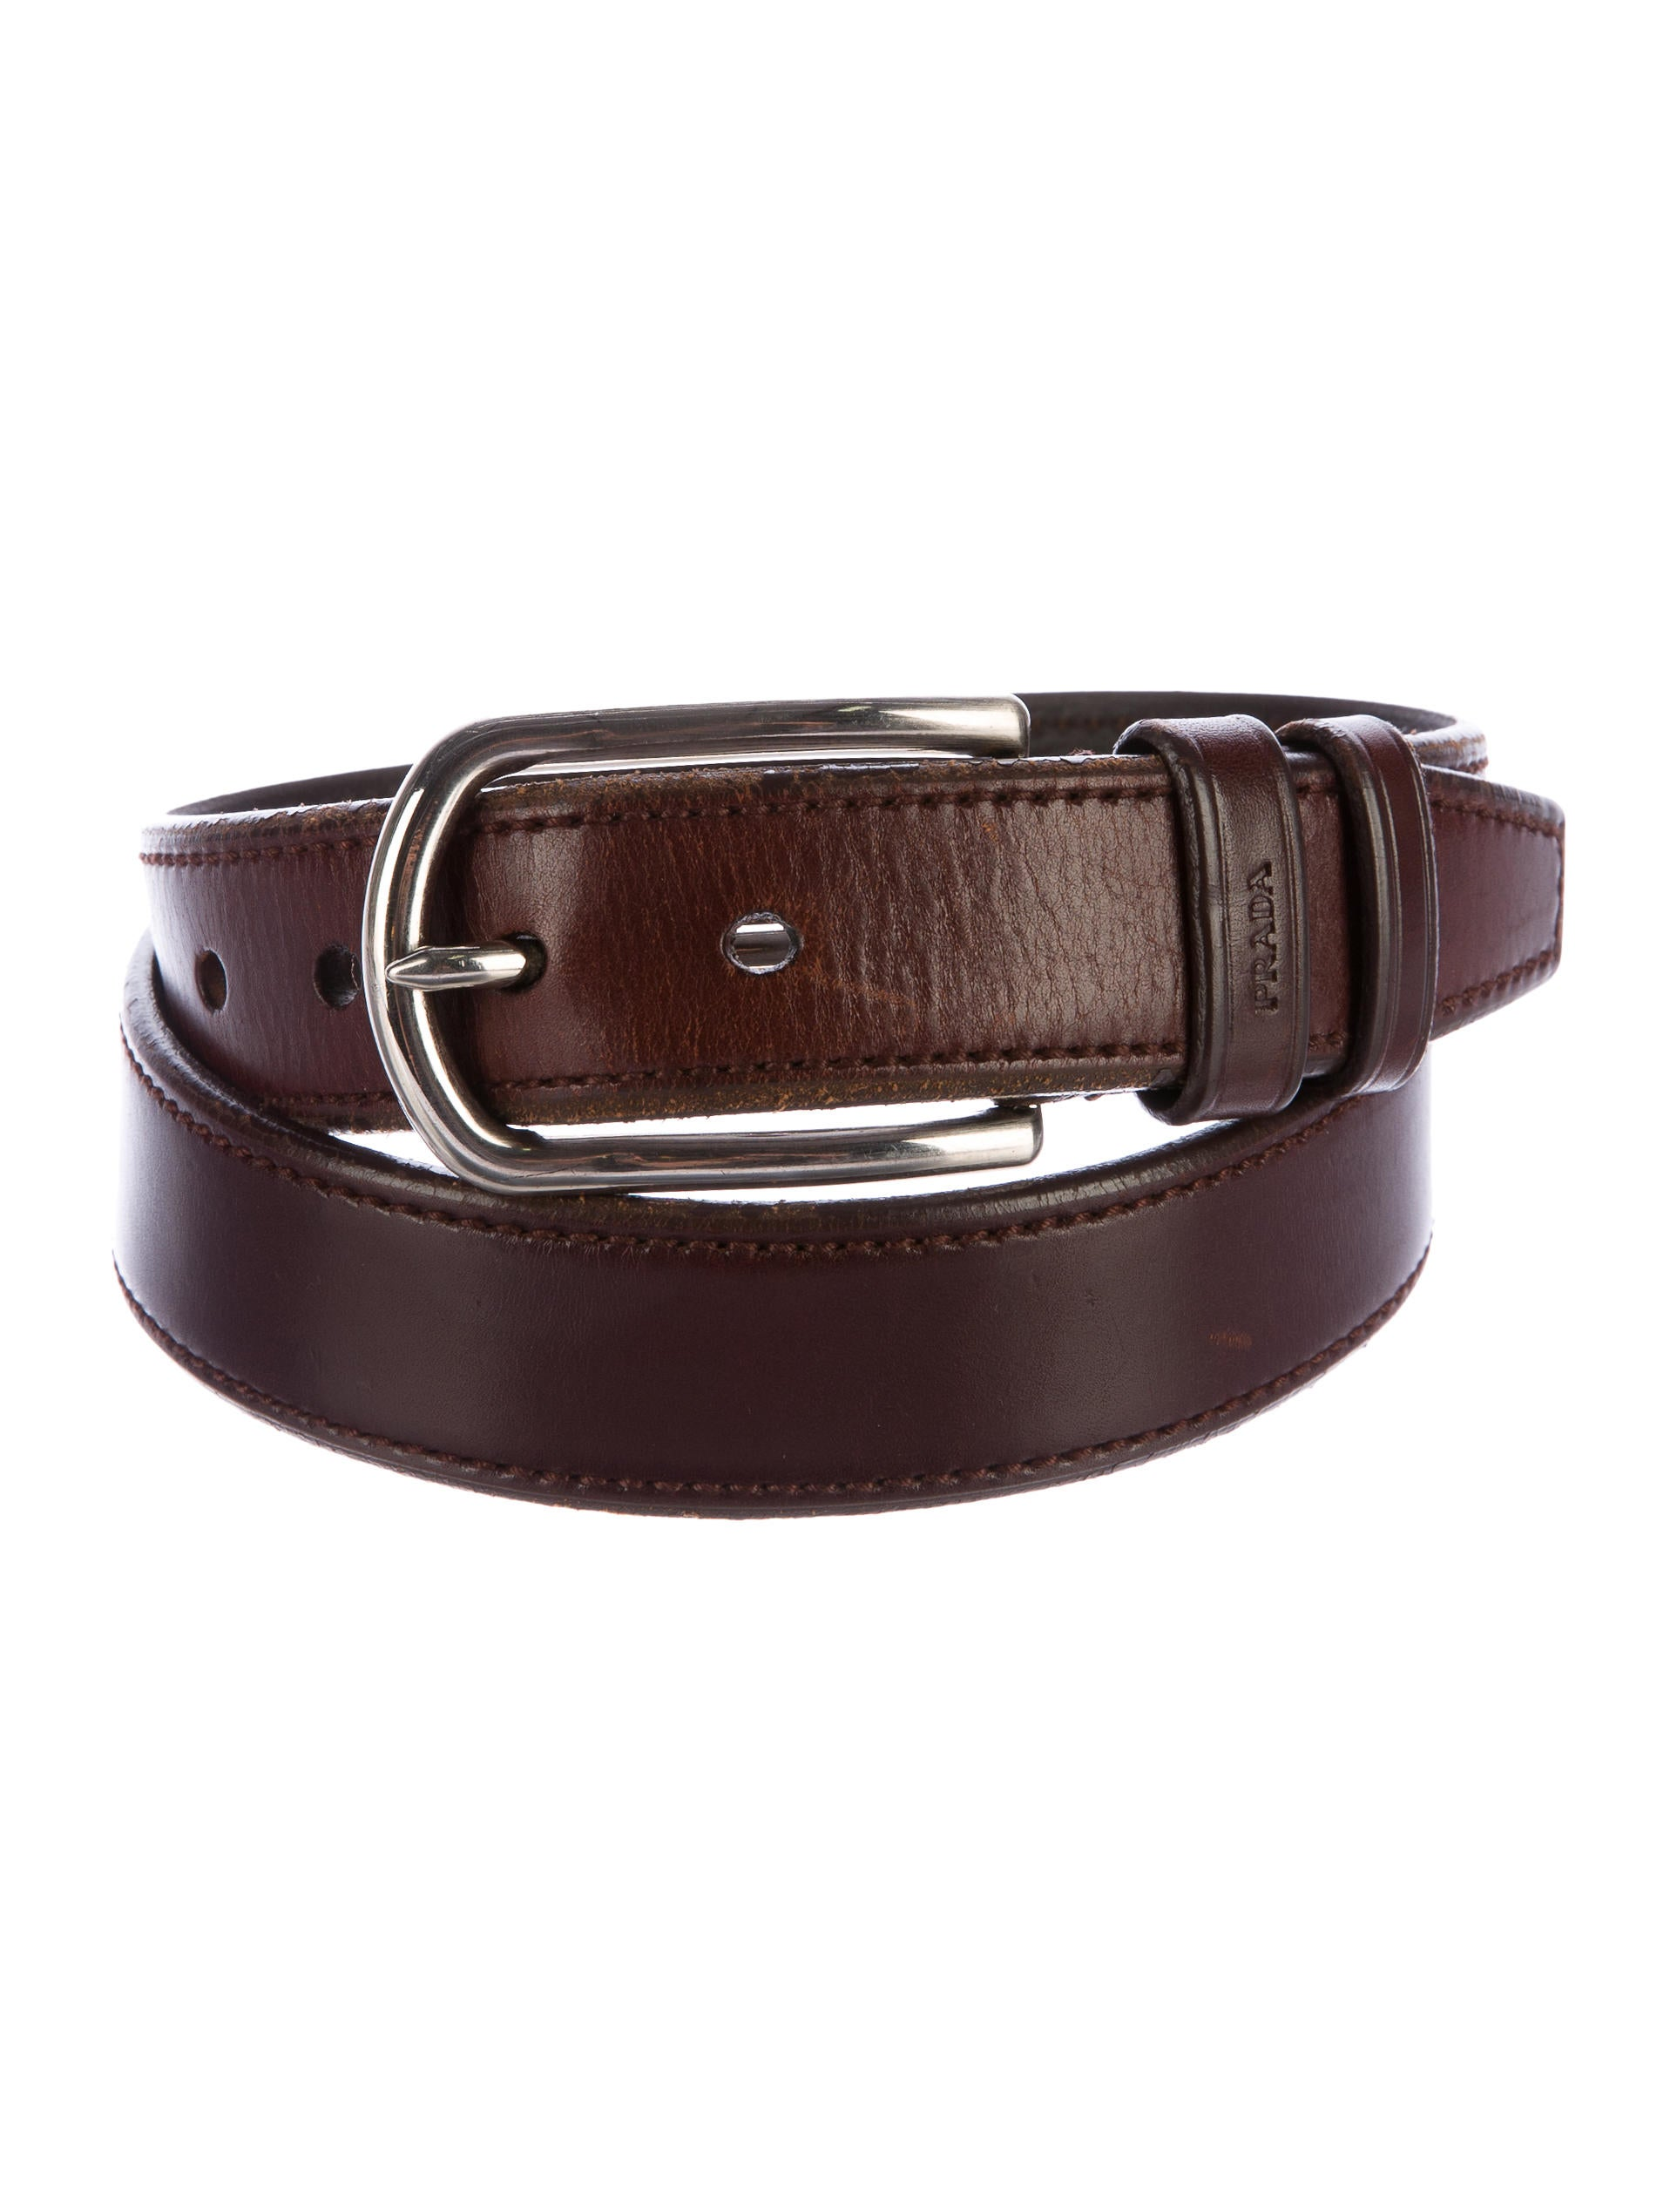 Mens Dress Belts Offering a great selection of men's dress belts in clean, contemporary styling you can coordinate with your business and formal wear. Our belts come with buckles in gold and silver tones to complement our dress belts and your apparel and accessories.